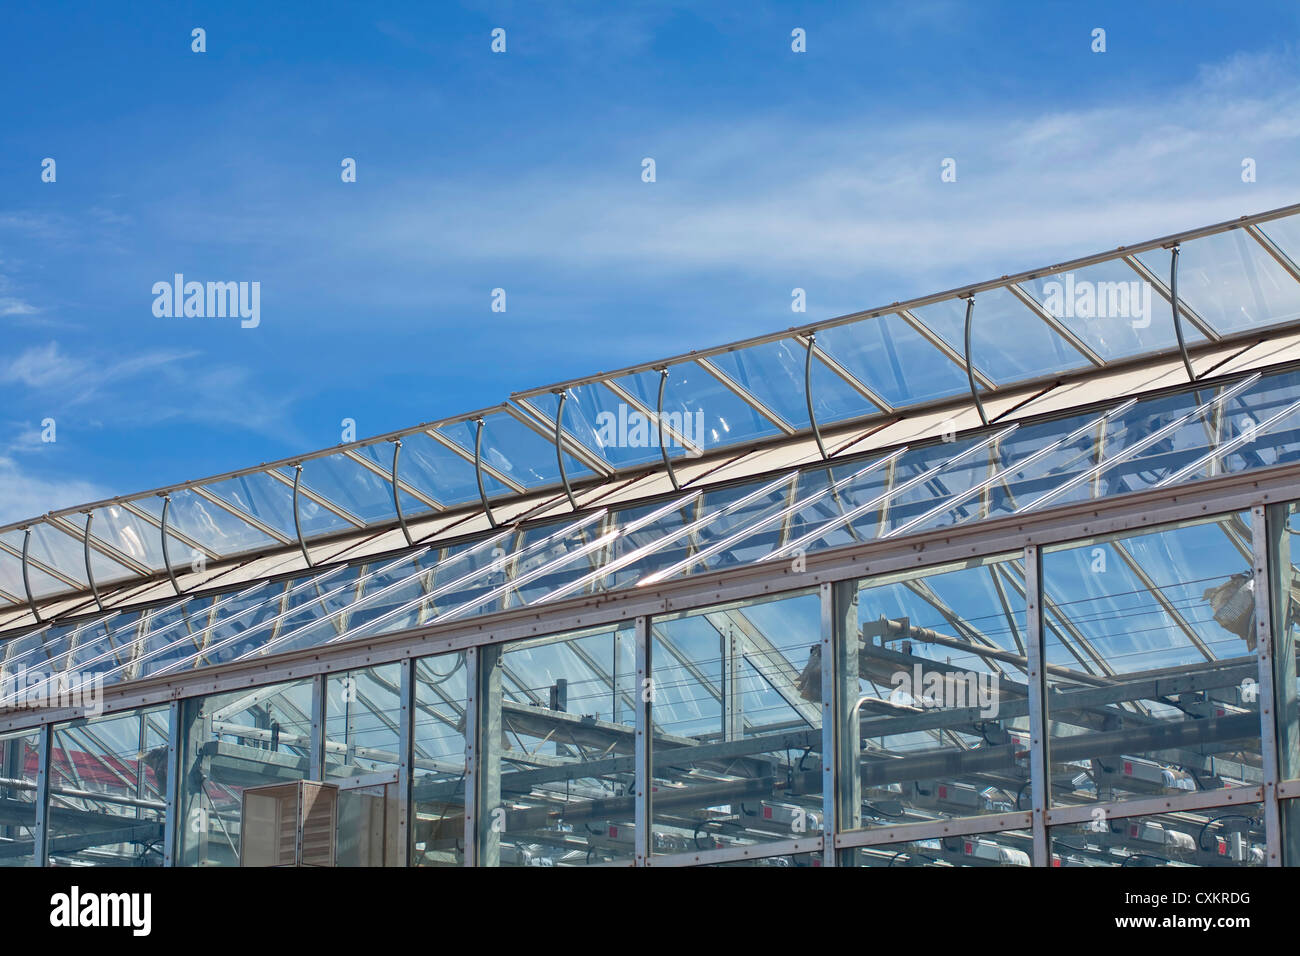 Vents on a large commercial glass greenhouse. - Stock Image